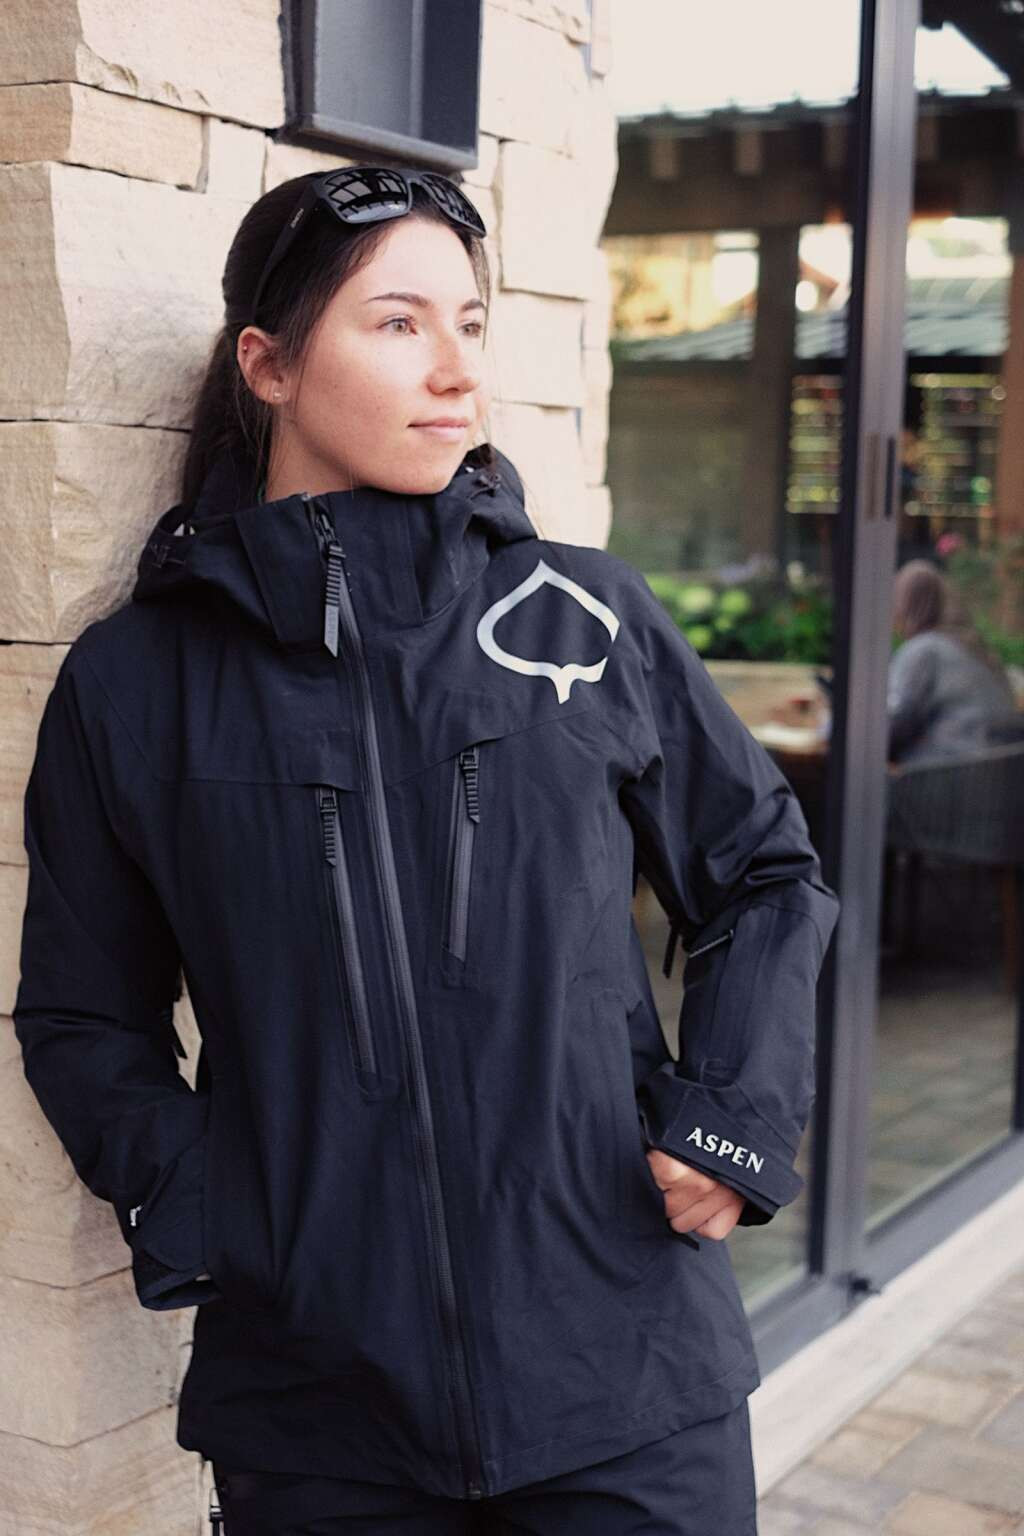 Aspen Skiing Co.'s new branded jacket is modeled by a worker. The ASPENX line will feature the aspen leaf logo. | Aspen Snowmass/courtesy photo